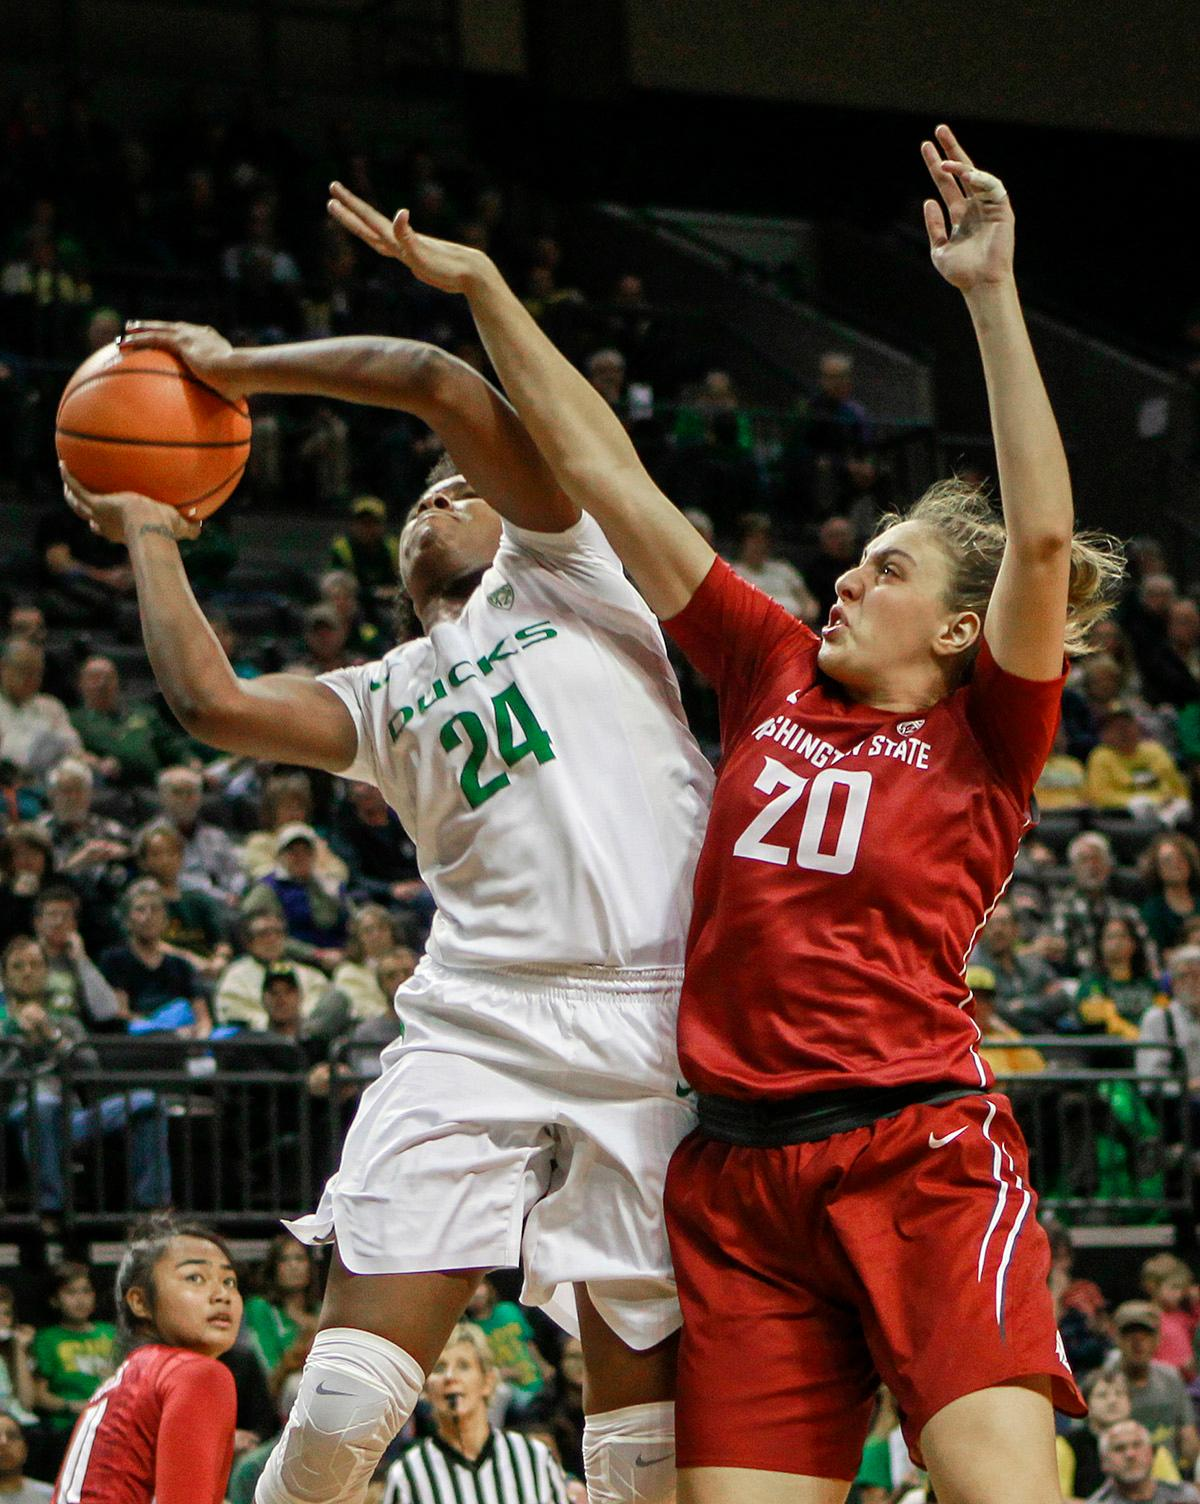 Washington State University Cougars Maria Kostourkova (#20) attempts to block the shot of Oregon Ducks Ruthy Hebard (#24). In their first conference basketball game of the season, the Oregon Women Ducks defeated the Washington State Cougars 89-56 in Matt Knight Arena Saturday afternoon. Oregon's Ruthy Hebard ran up 25 points with 10 rebounds. Sabrina Ionescu shot 25 points with five three-pointers and three rebounds. Lexi Bando added 18 points, with four three-pointers and pulled down three rebounds. Satou Sabally ended the game with 14 points with one three-pointer and two rebounds. The Ducks are now 12-2 overall with 1-0 in conference and the Cougars stand at 7-6 overall and 0-1 in conference play. The Oregon Women Ducks next play the University of Washington Huskies at 1:00 pm on Sunday. Photo by Rhianna Gelhart, Oregon News Lab